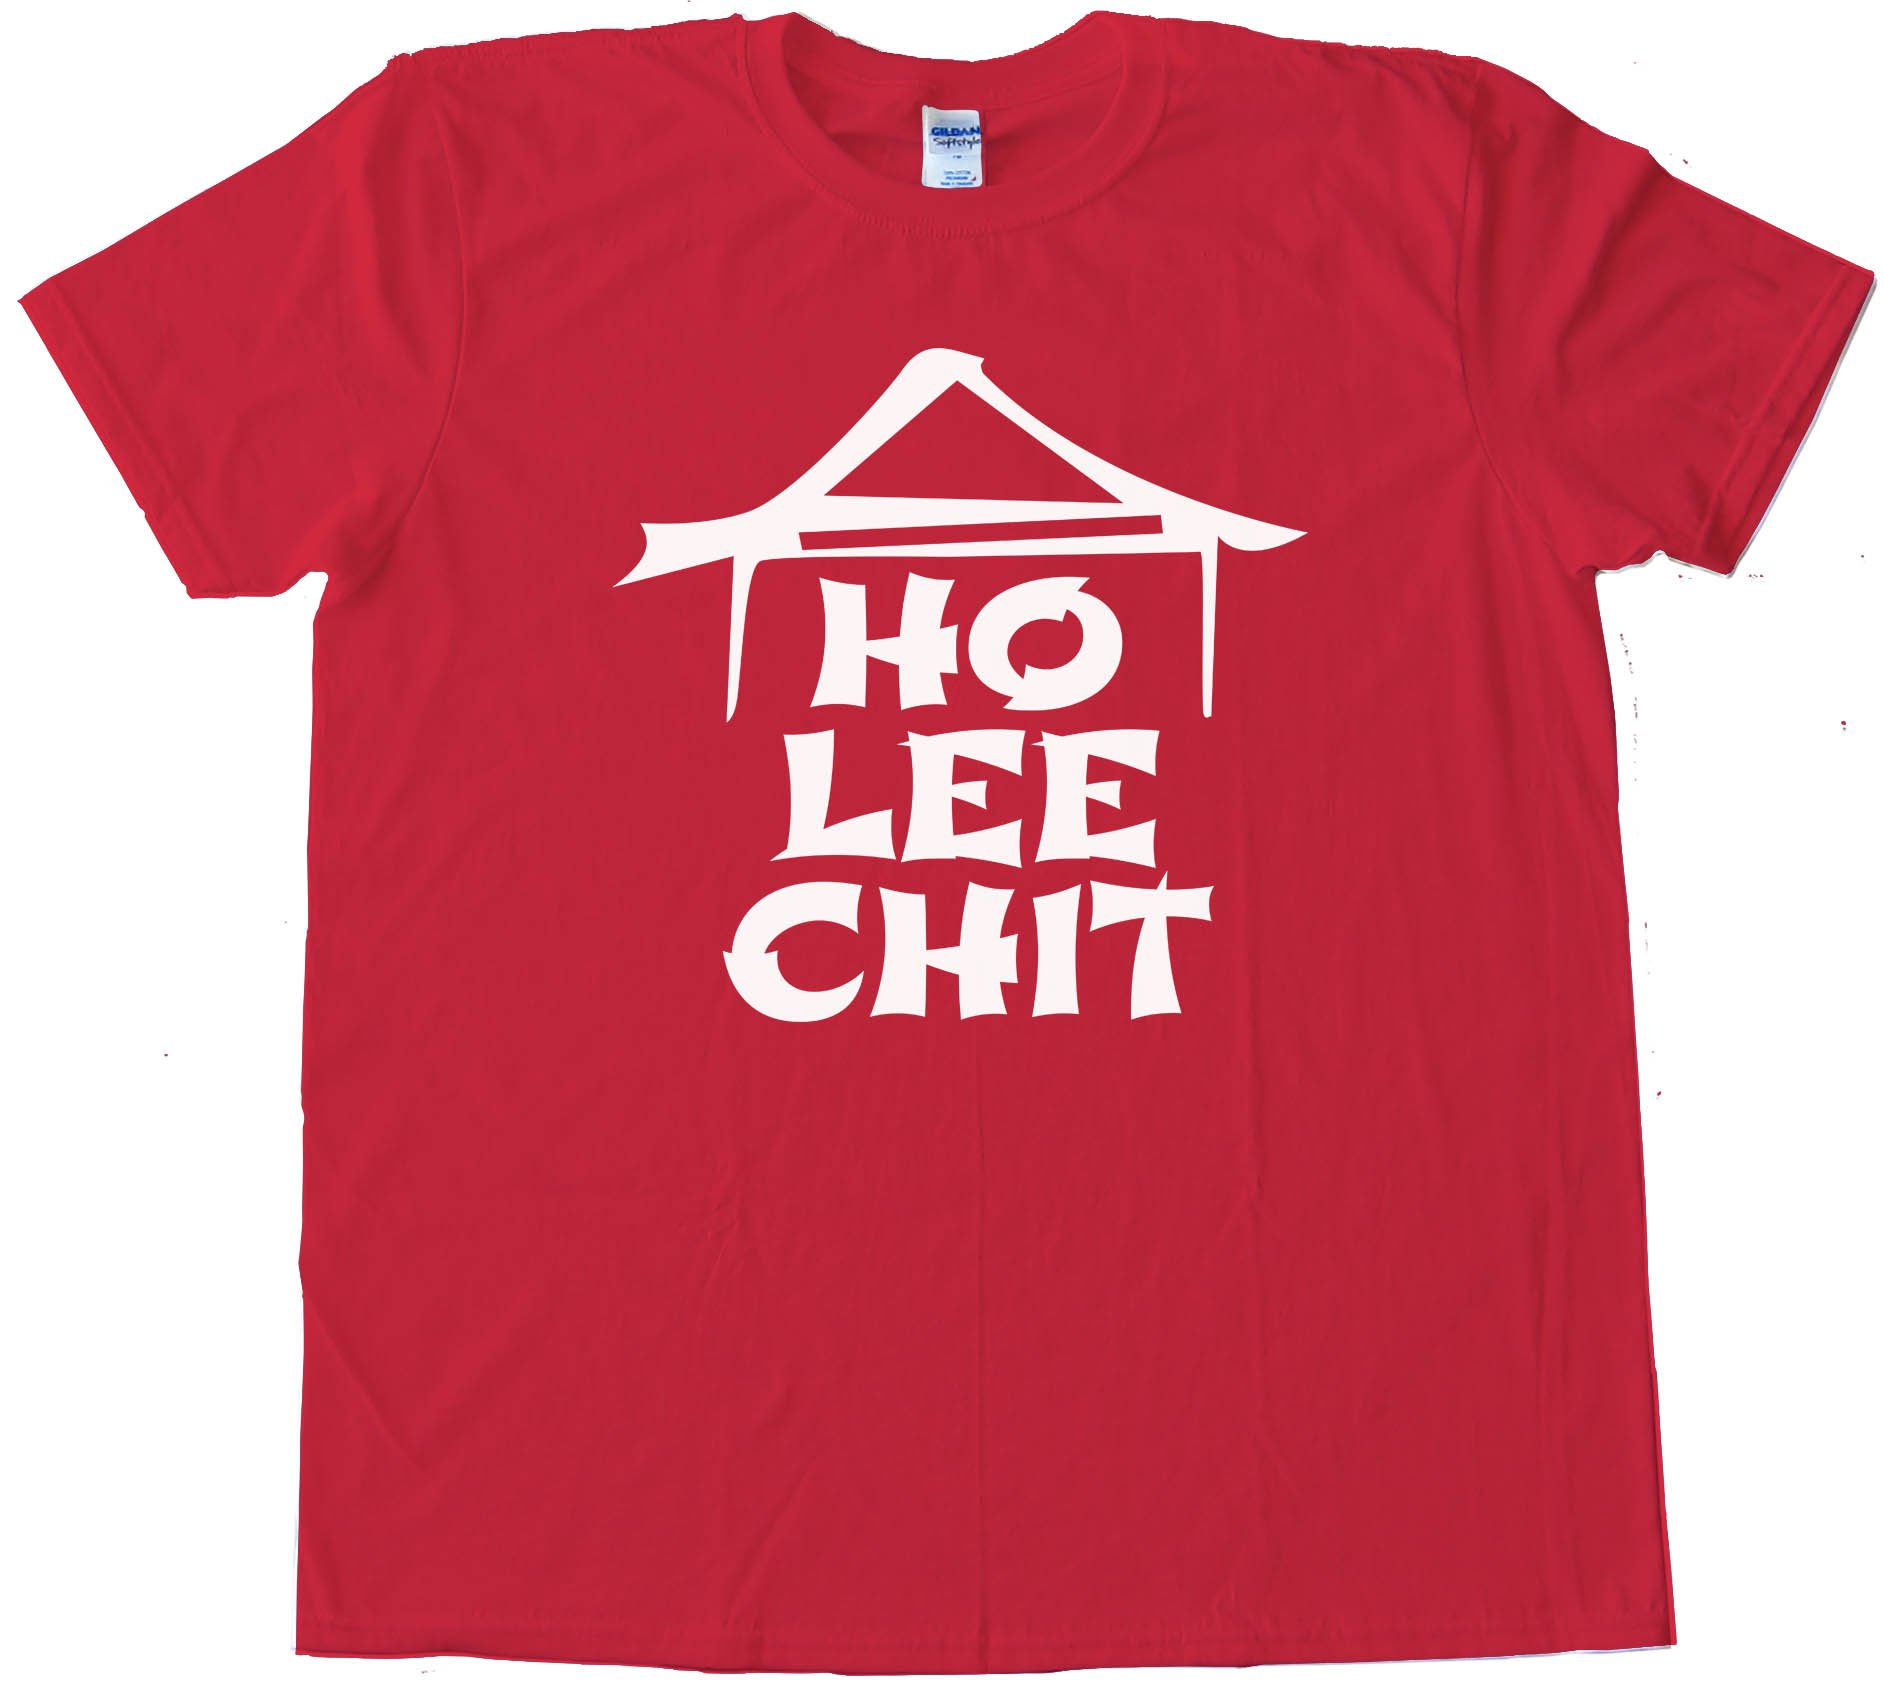 Ho Lee Chit Chinese Restaurant - Tee Shirt